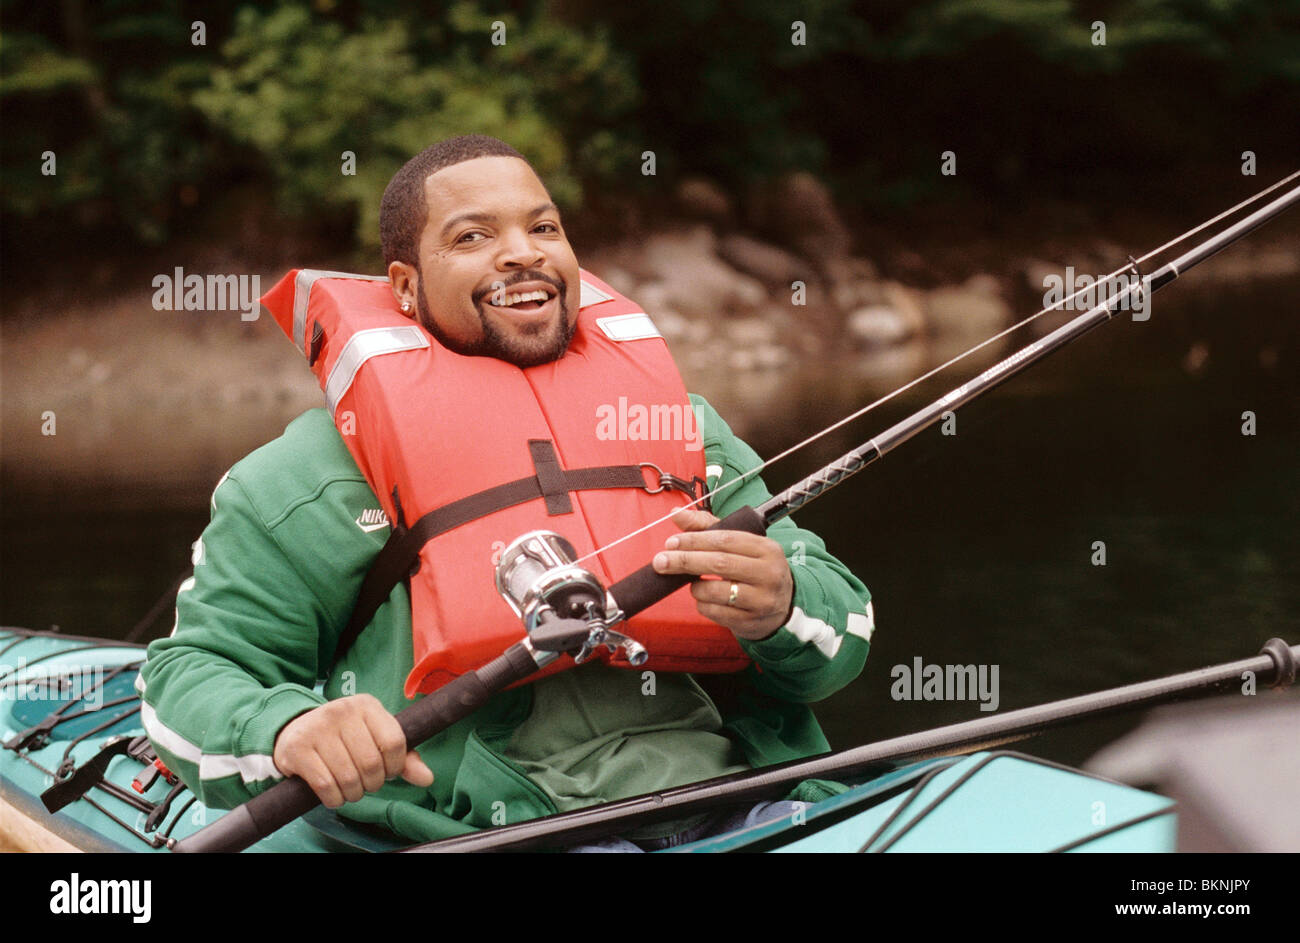 ARE WE DONE YET? (2007) ICE CUBE DONE 001-04 - Stock Image